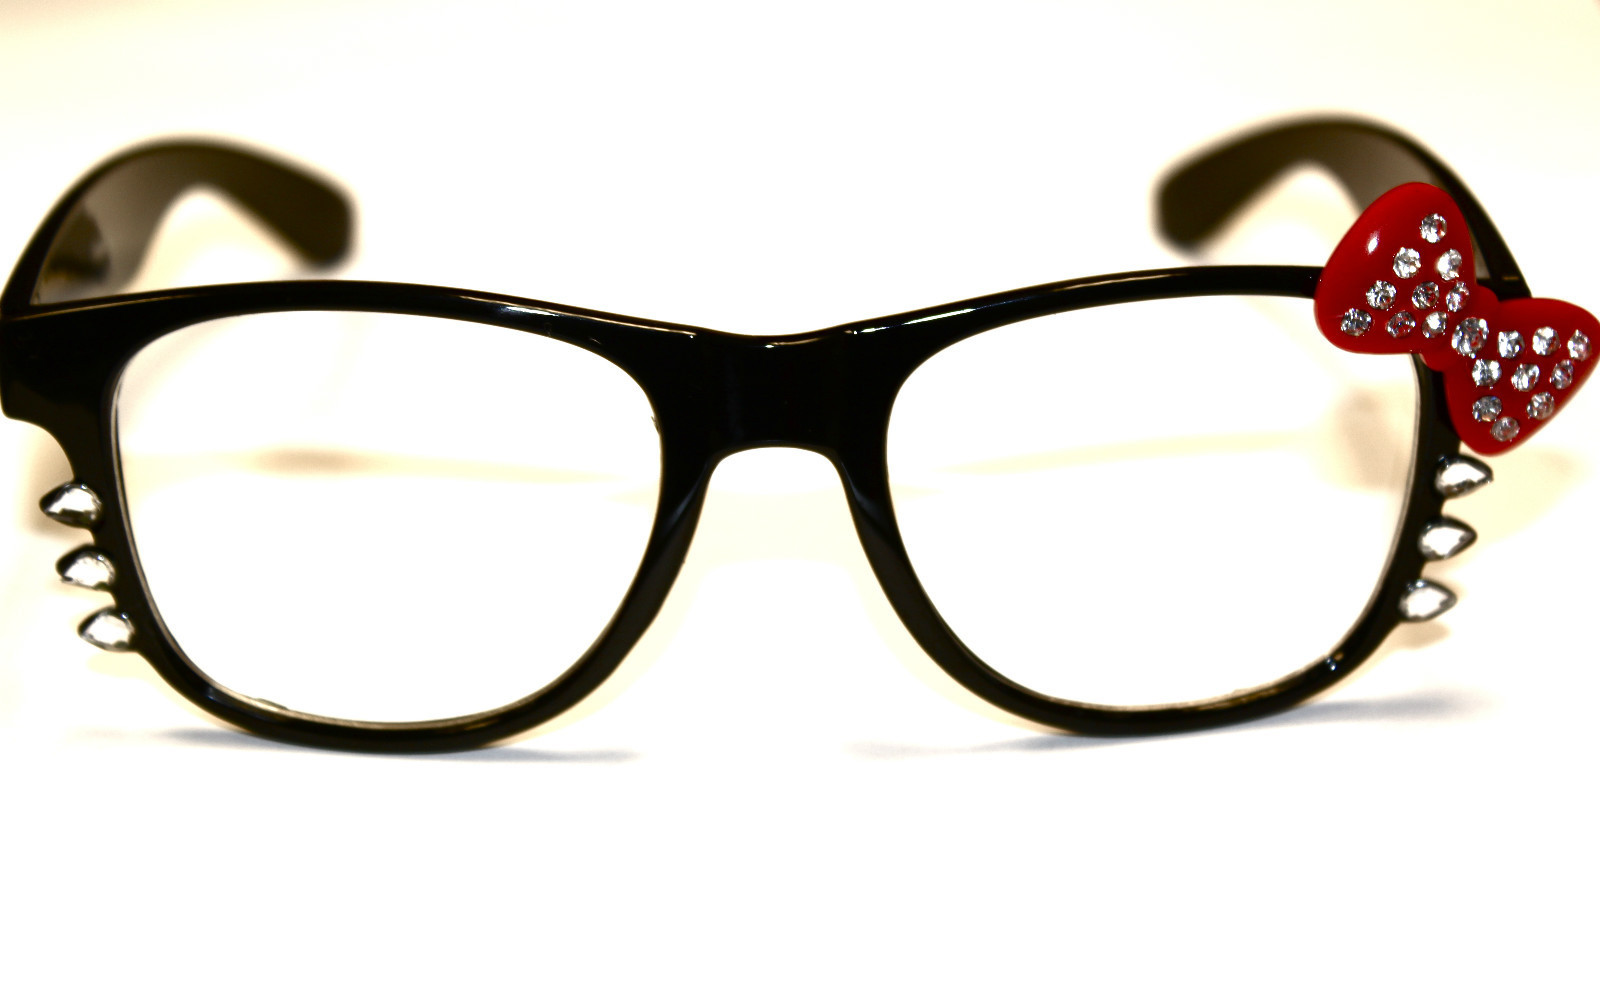 1600x1003 Geek Glasses Clipart Nerd Glasses Black With White Clipart Free